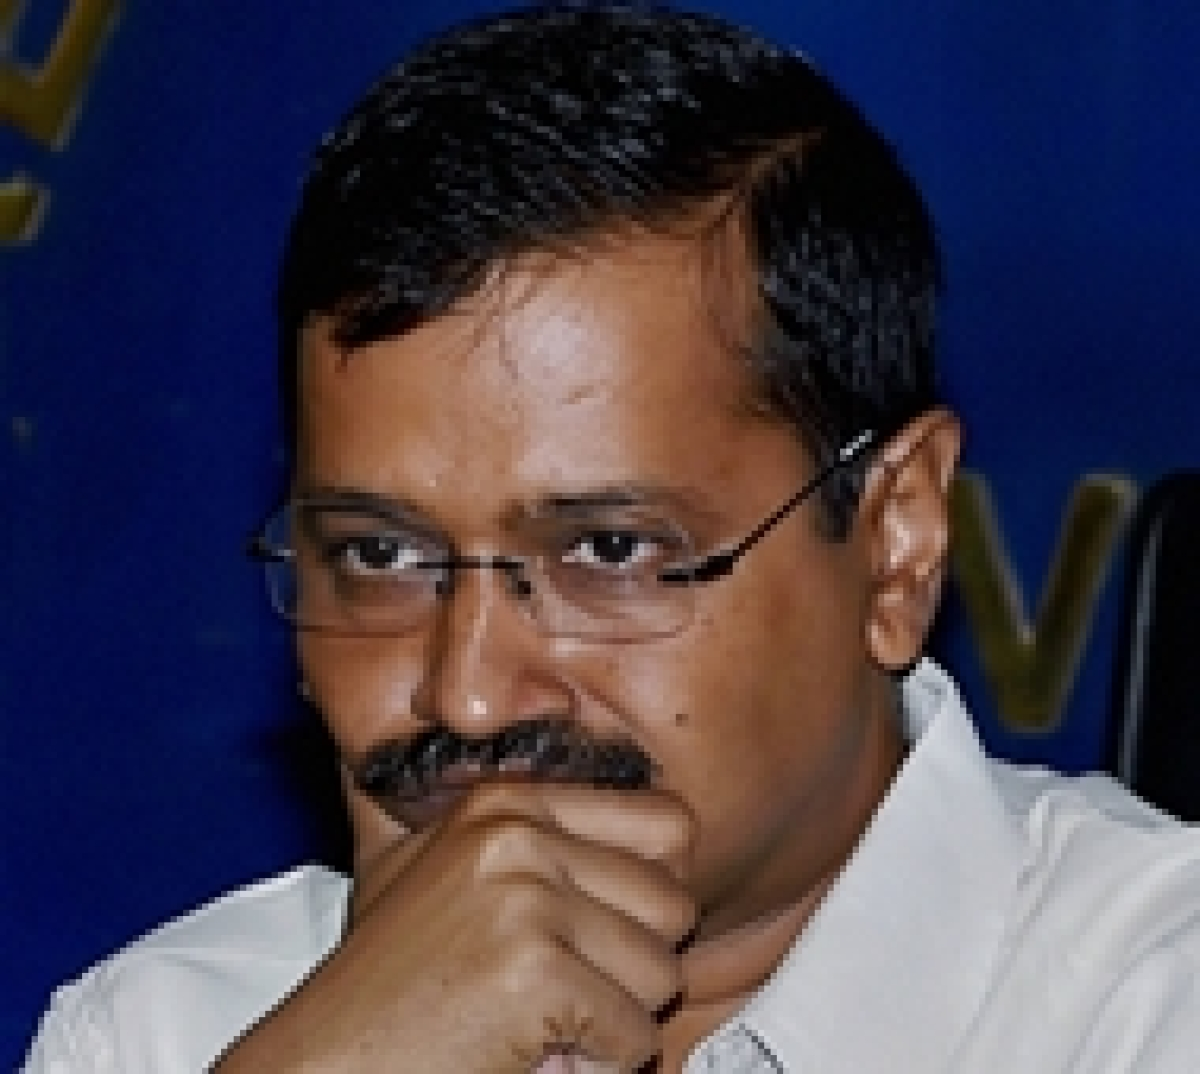 Emergency like situation in Delhi, says Kejriwal after MLA detained